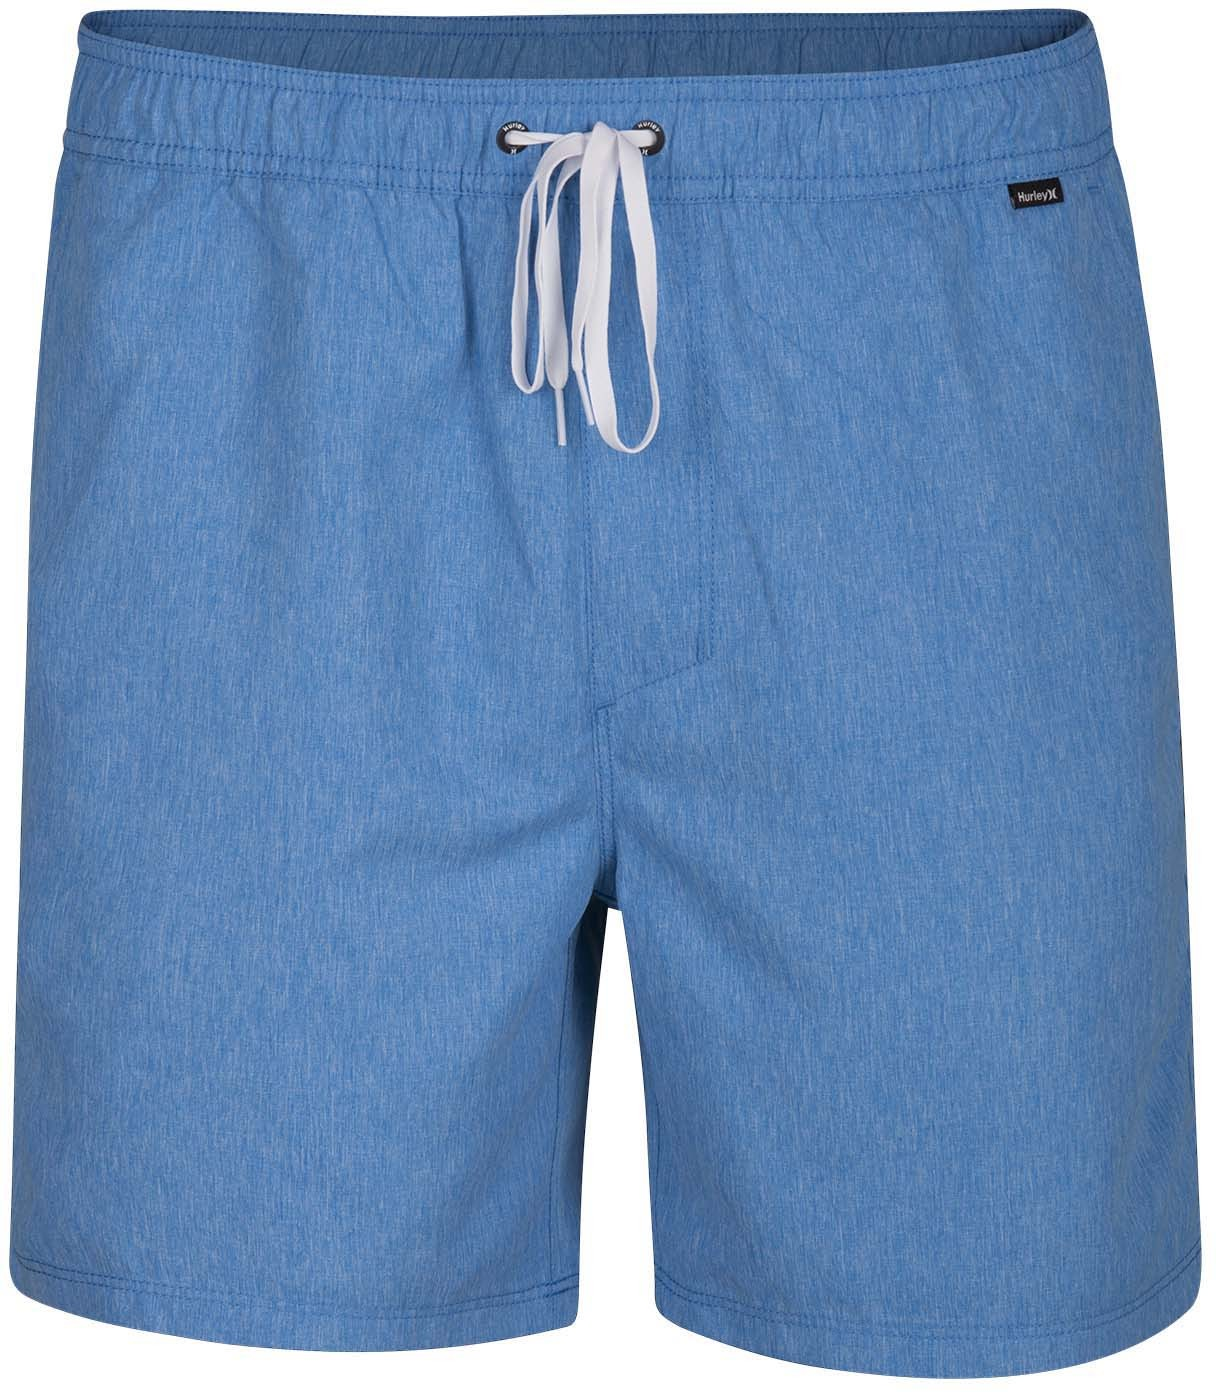 Hurley Heather Volley 17in Boardshorts - $160.00